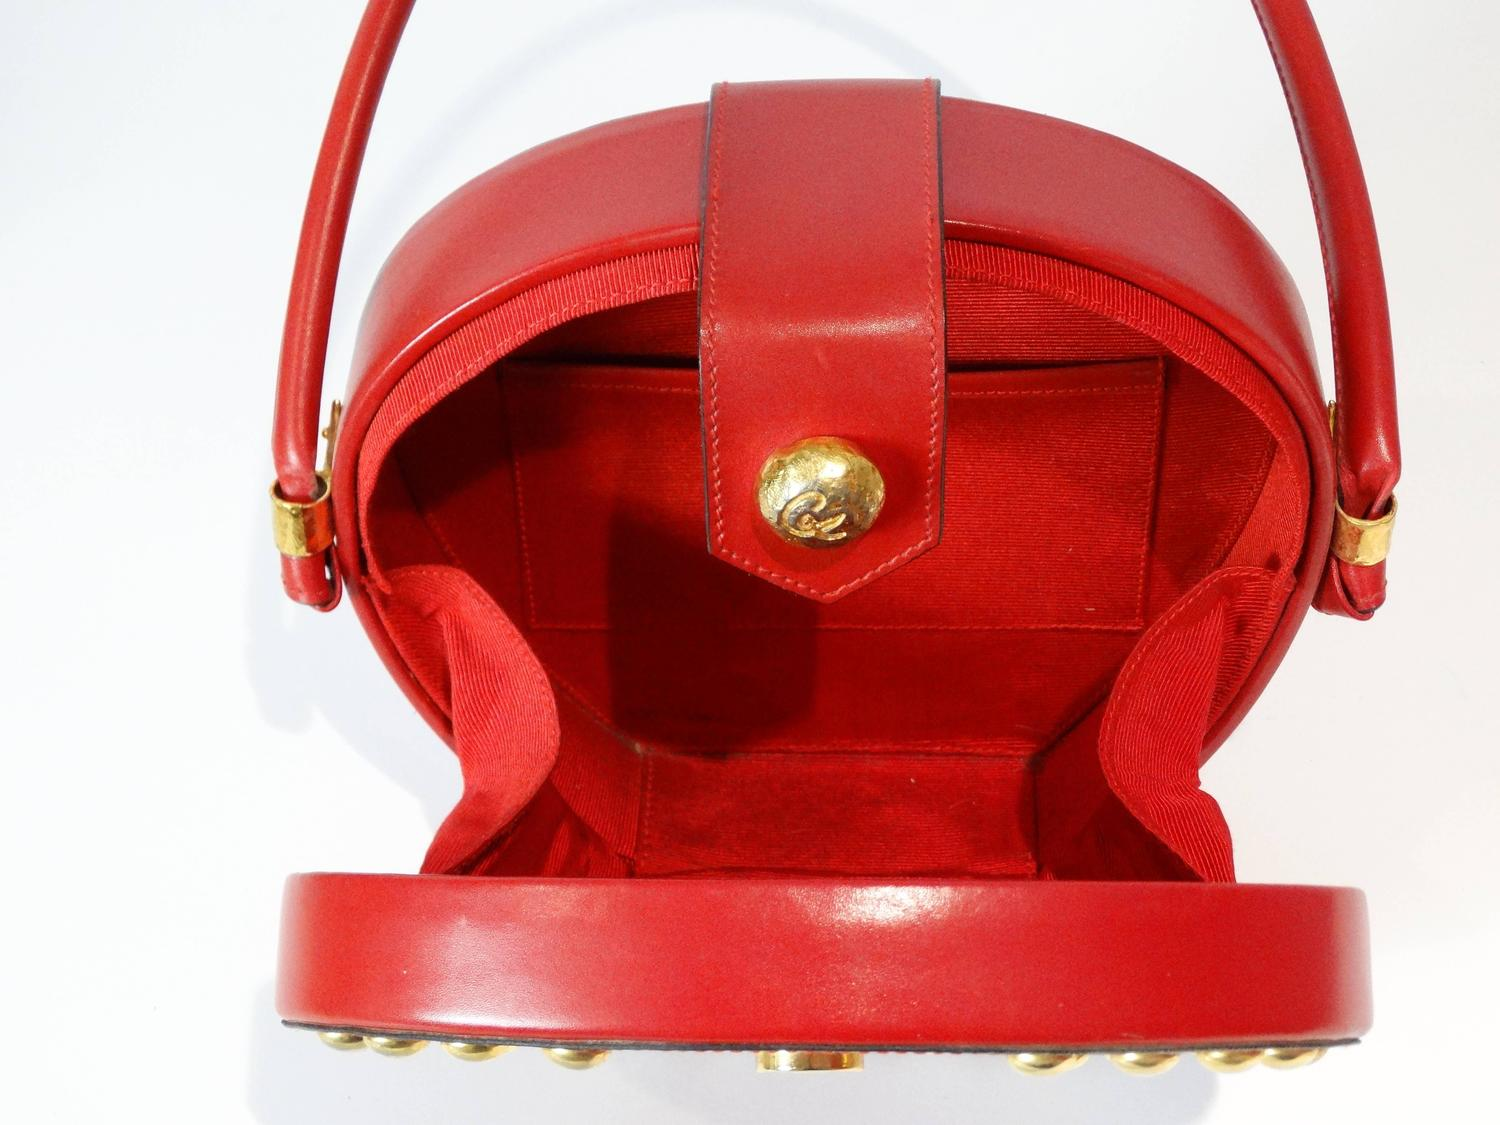 1990s Christian Lacroix Couture Top Handle Bag For Sale At